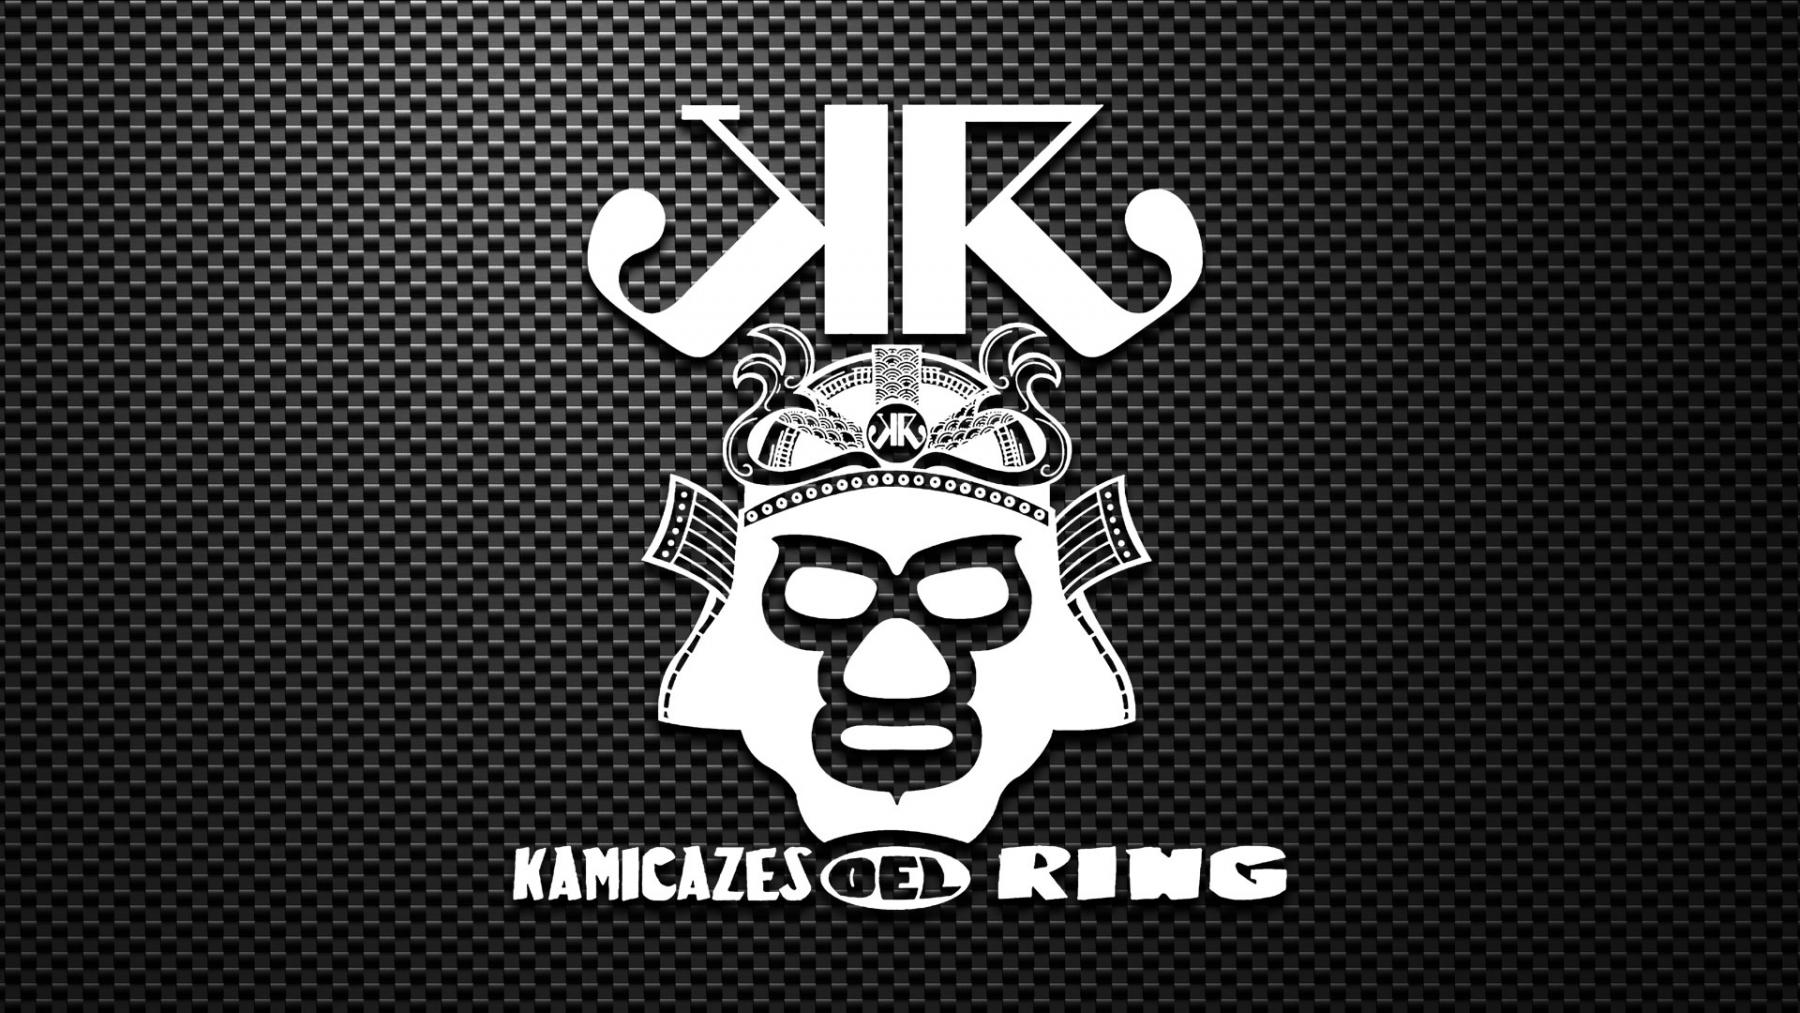 Kamicazes del Ring is on Powerbomb.tv